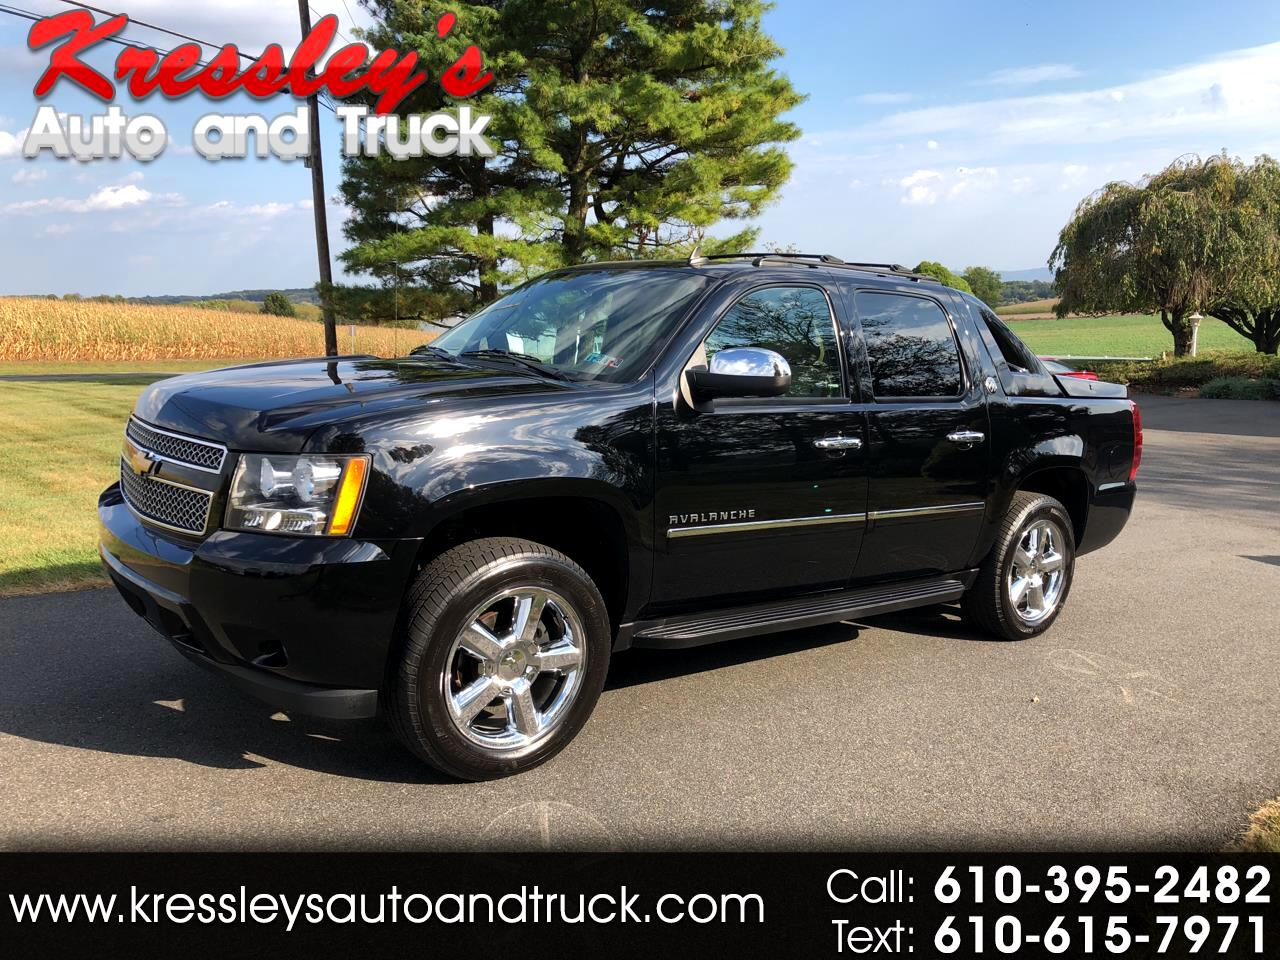 2013 Chevrolet Avalanche 4WD Crew Cab Black Diamond LTZ